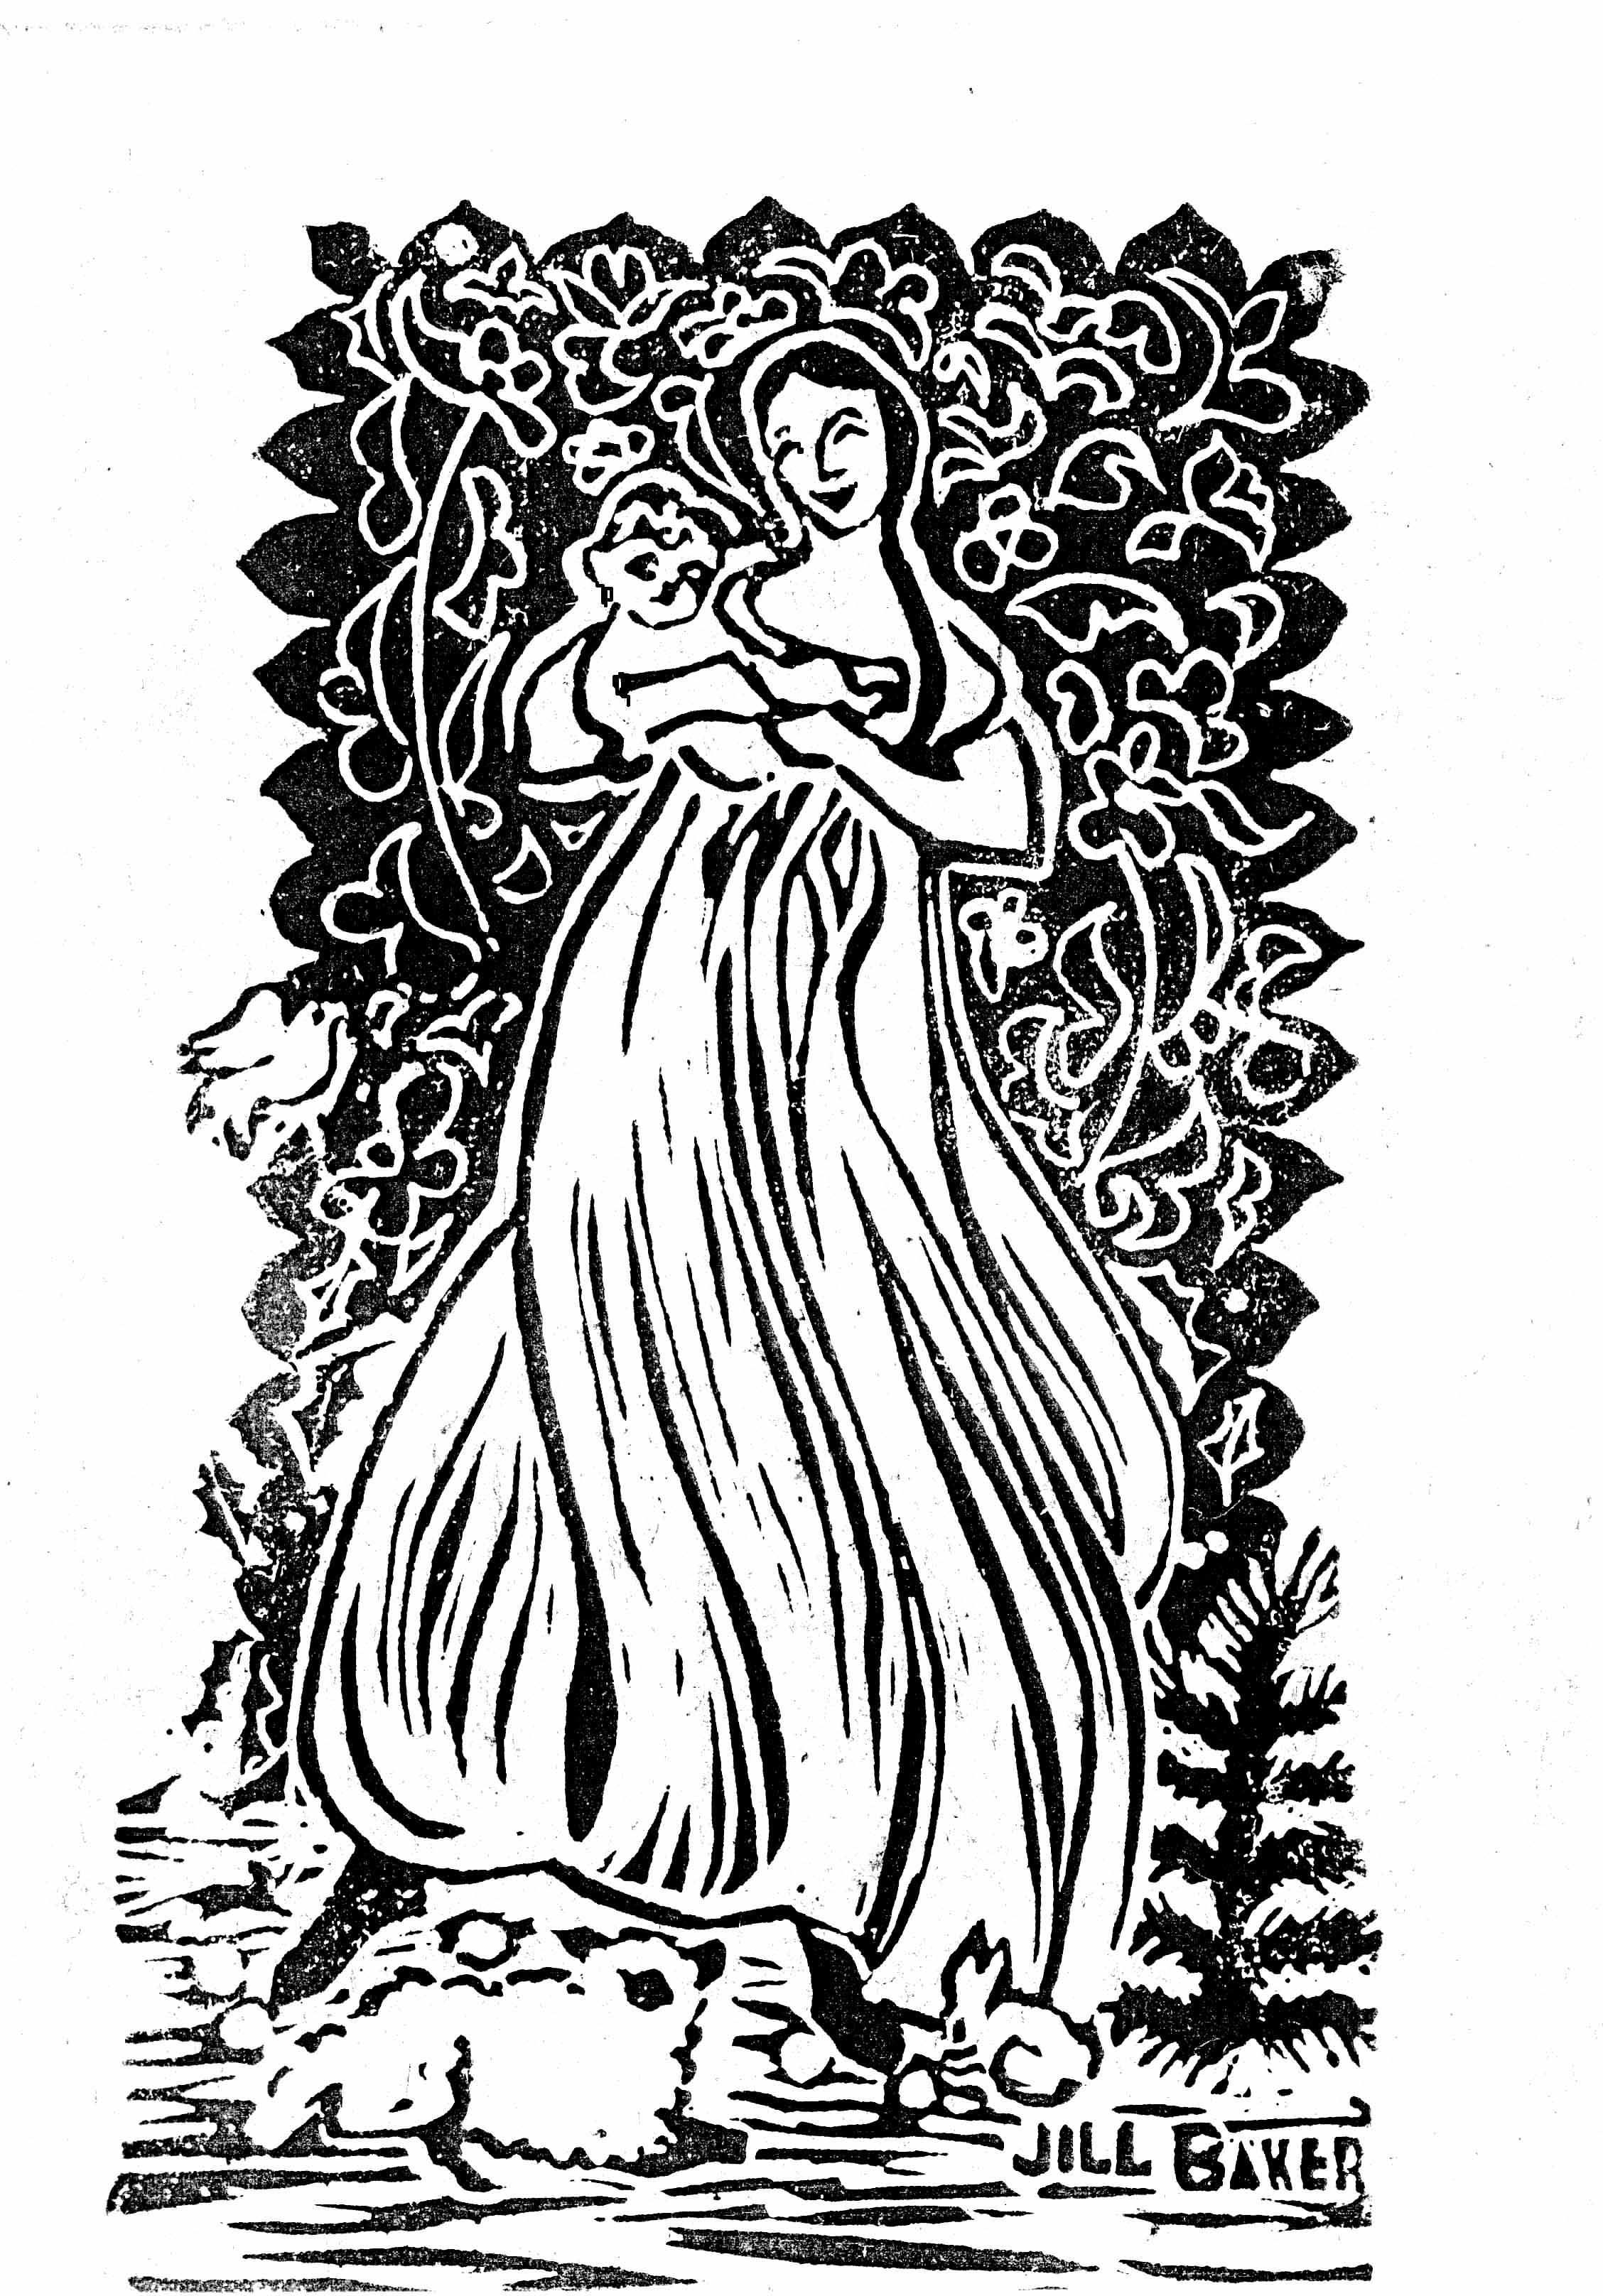 """Madonna"" by Jill Baker, 3x5in, blockprint, $200 